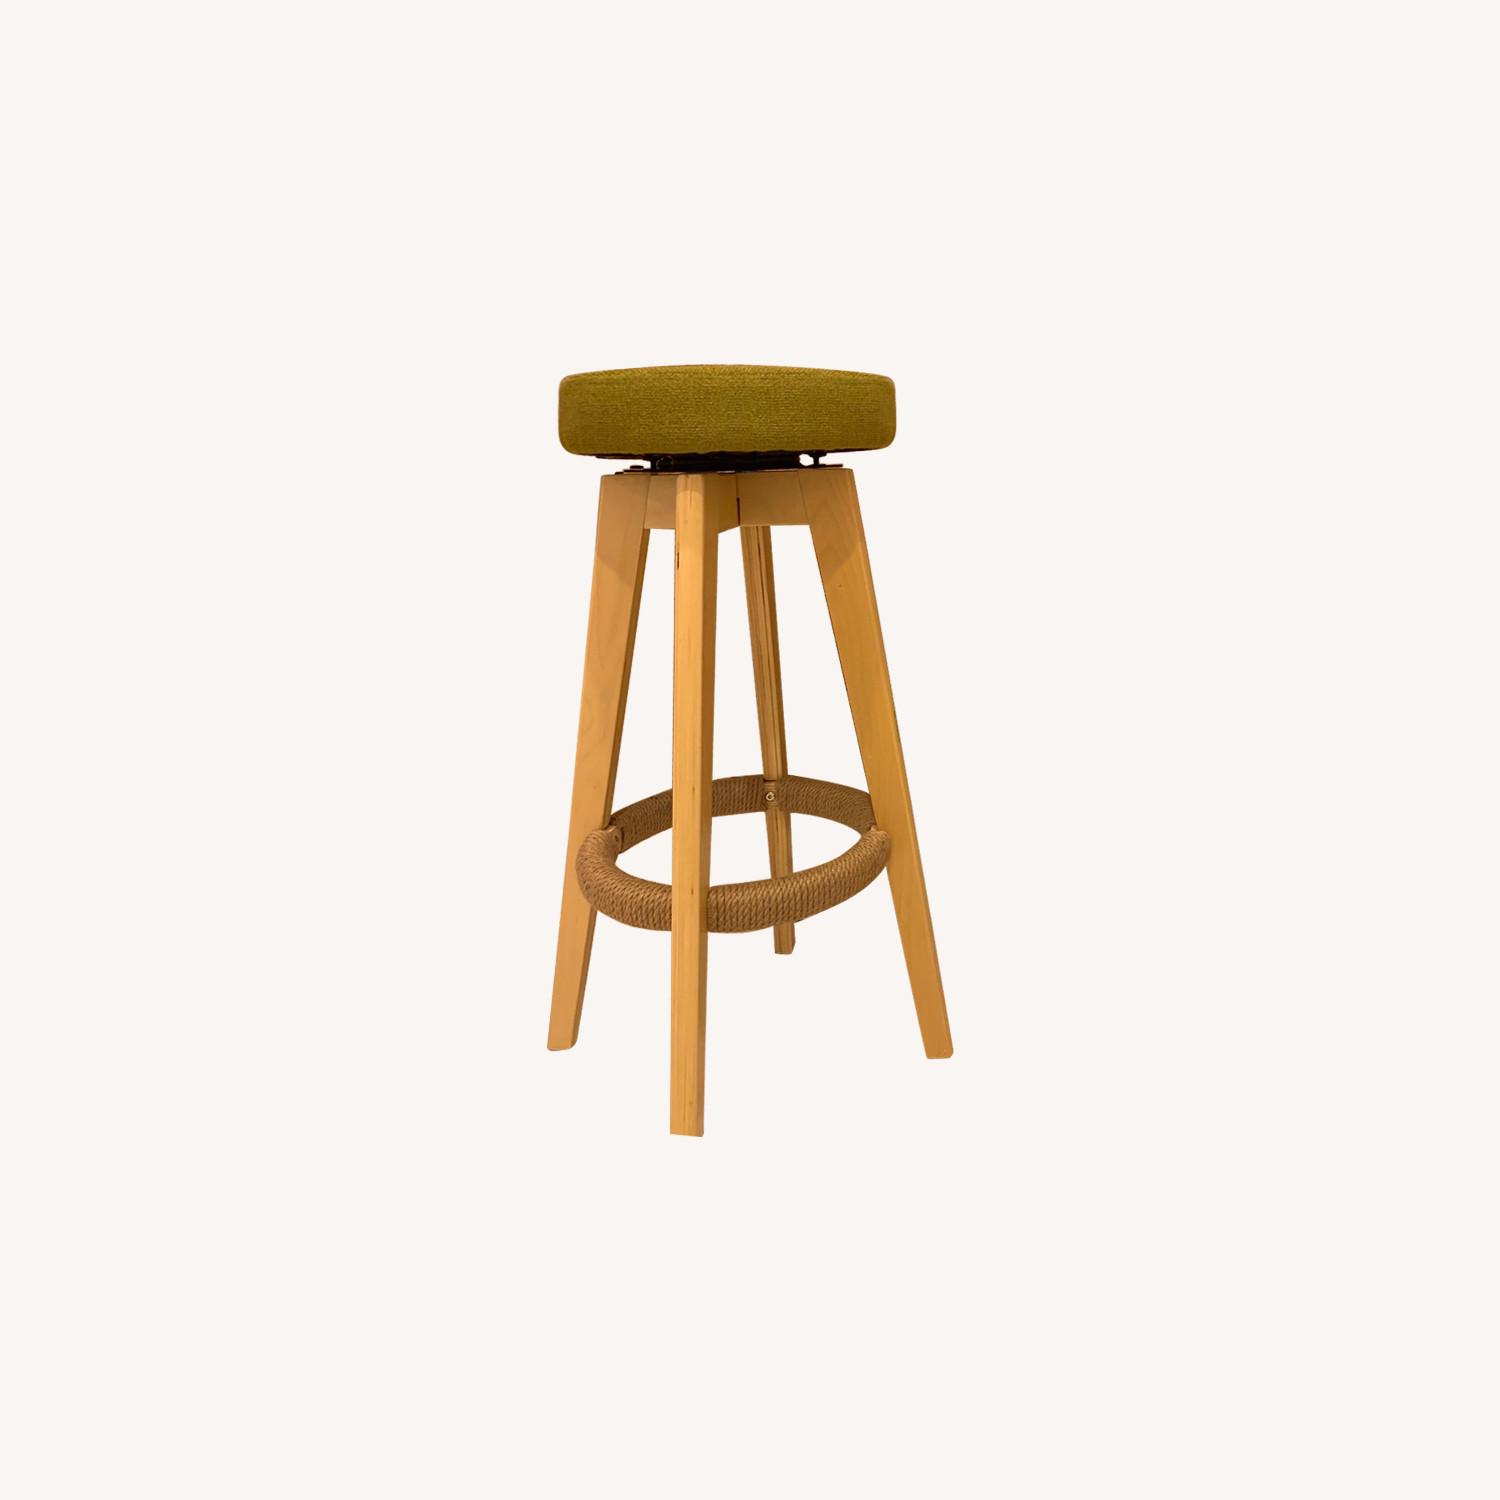 Unfinished Wooden Bar Stools